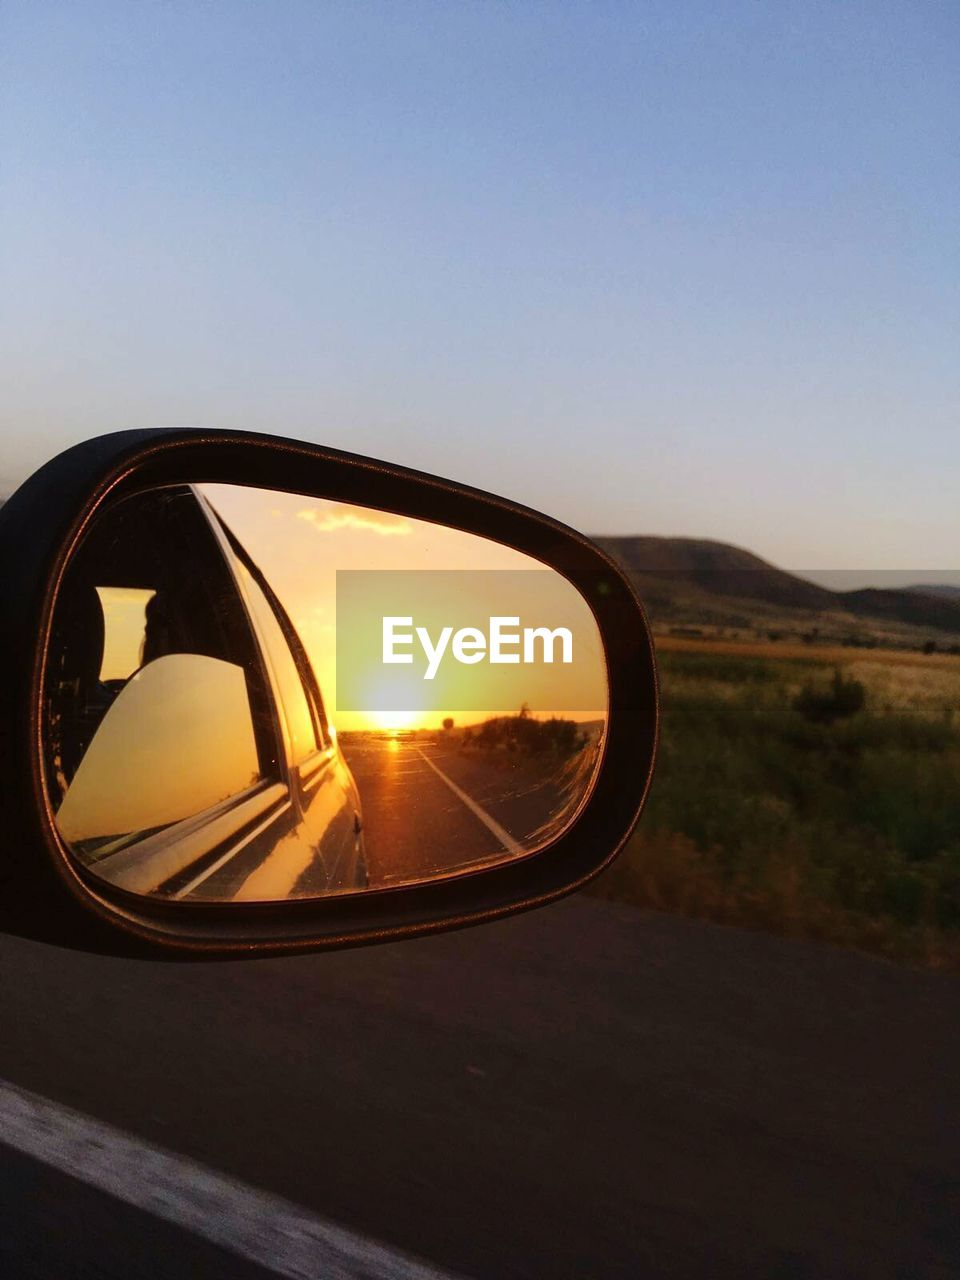 side-view mirror, car, transportation, reflection, sunset, road, land vehicle, vehicle mirror, mode of transport, nature, clear sky, no people, outdoors, sky, landscape, close-up, day